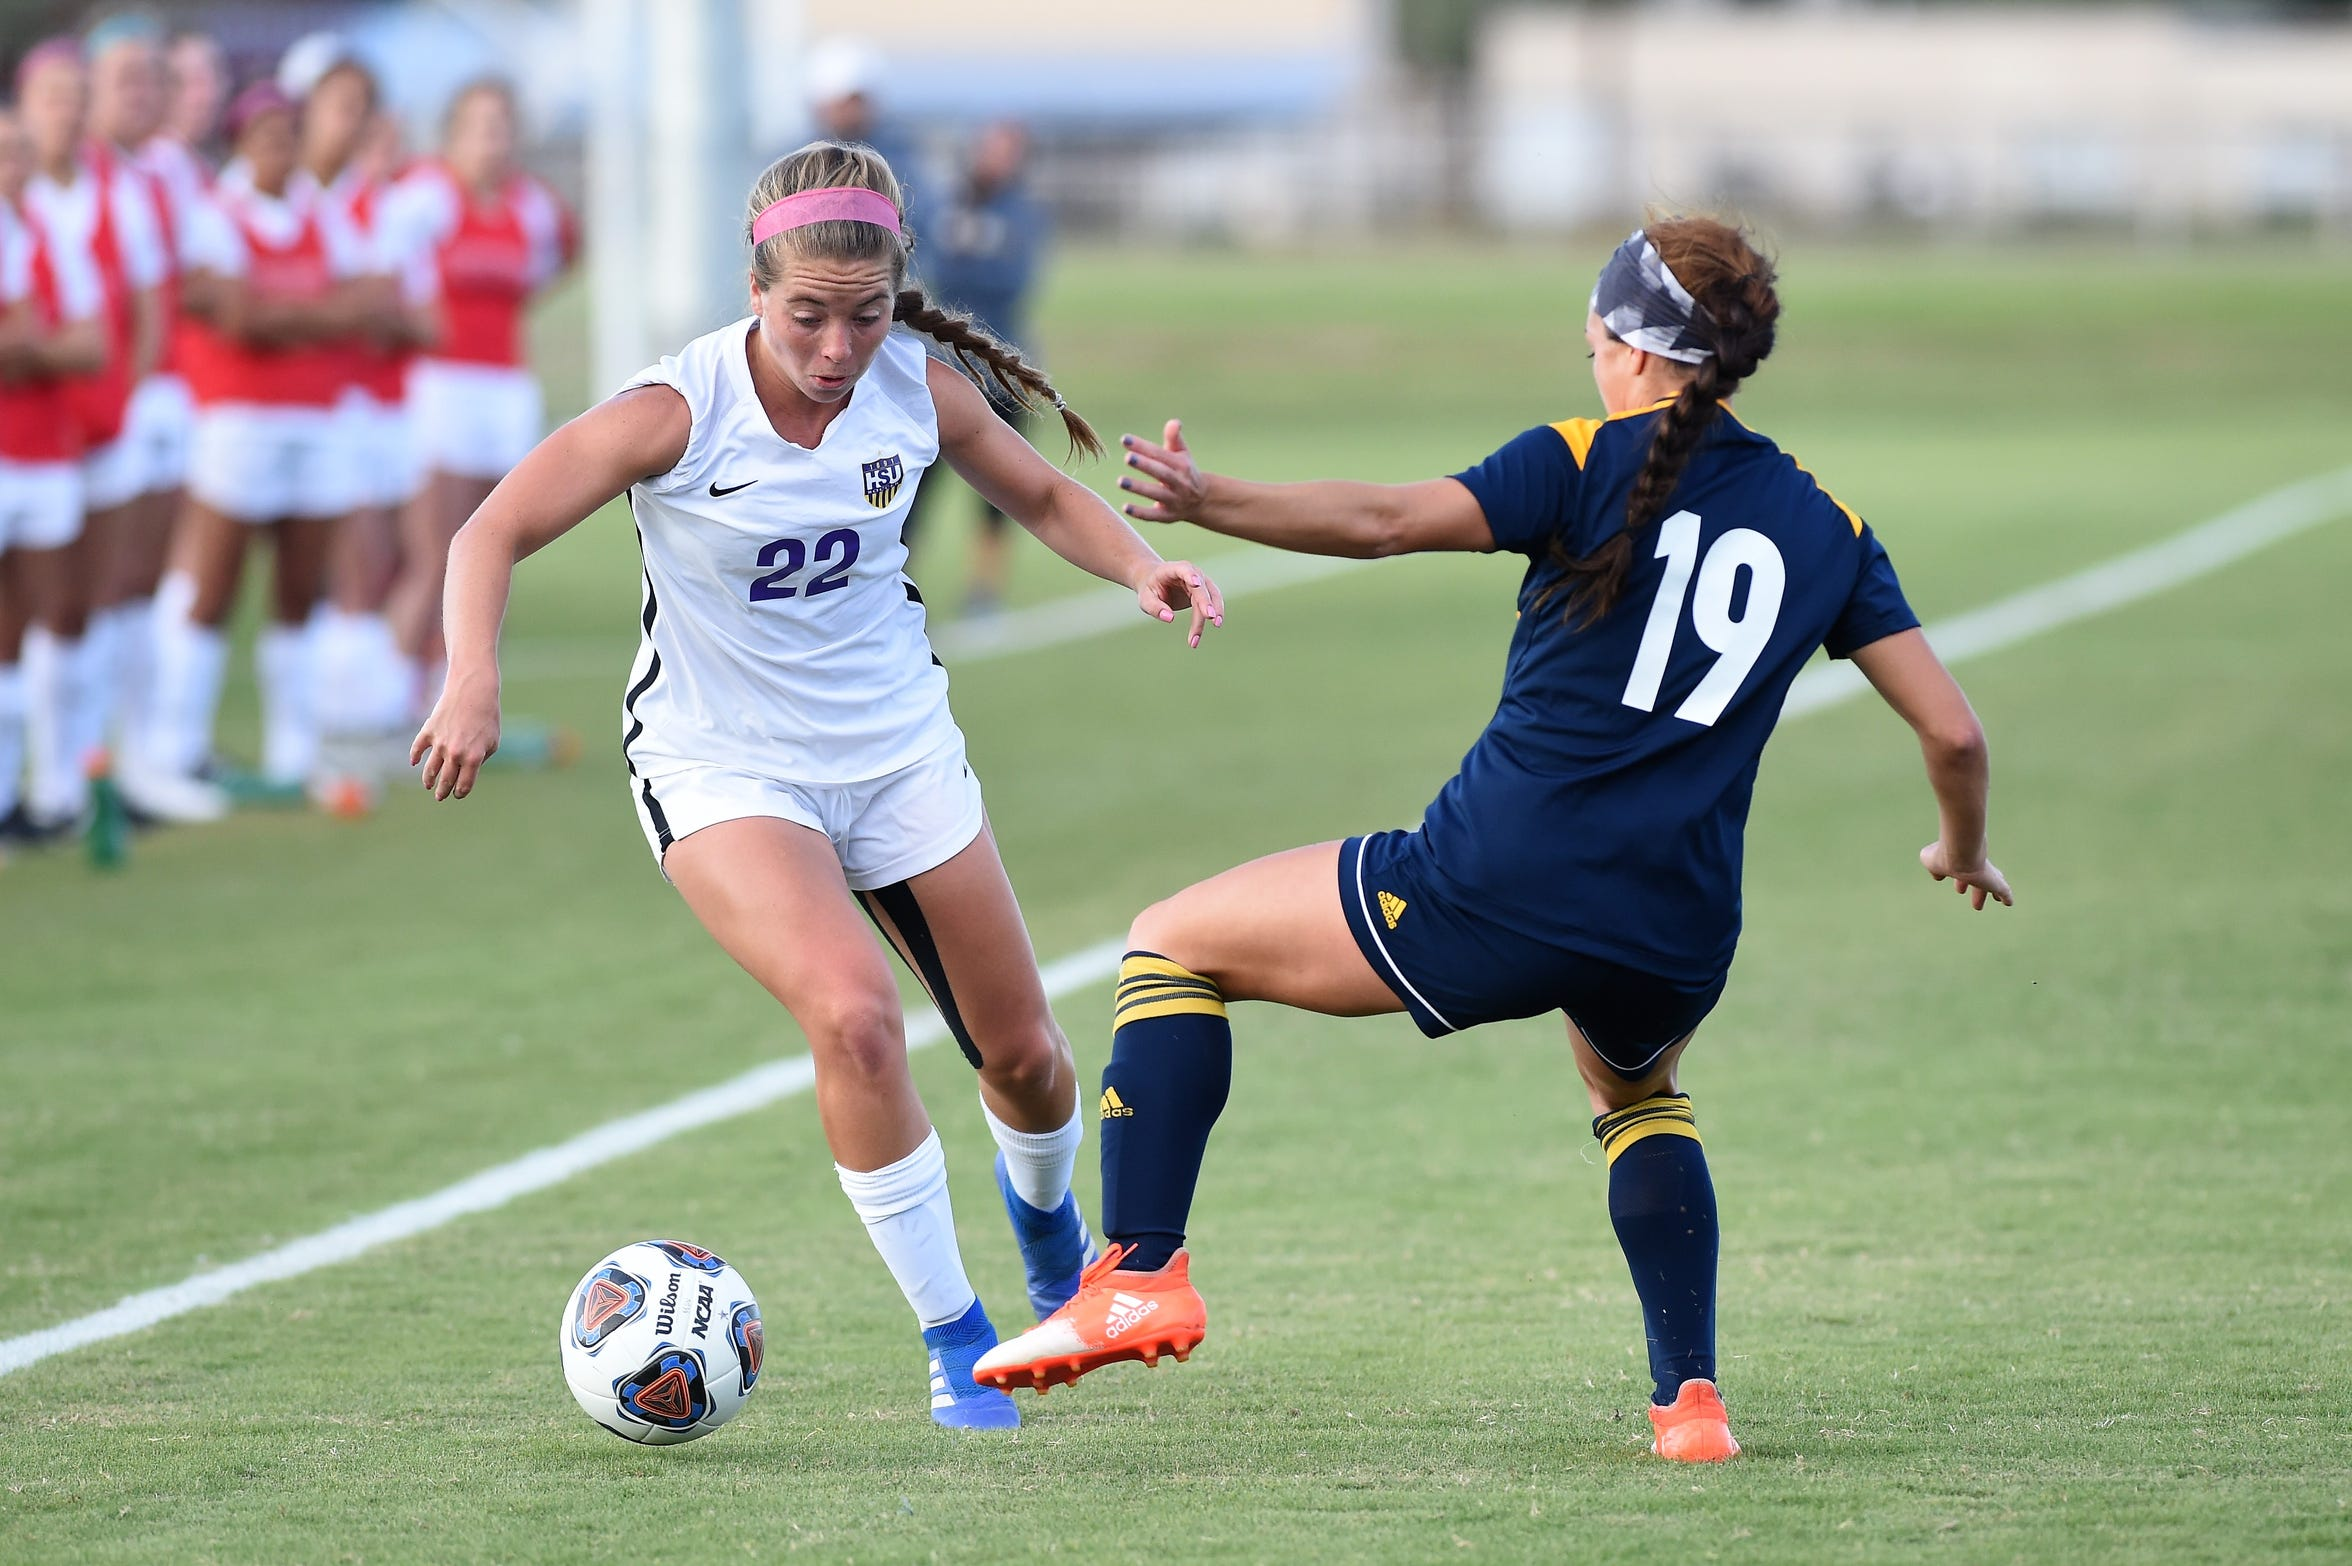 Hardin-Simmons defender Kendell Groom (22) makes a move past a Howard Payne defender earlier this season. Groom was the only returning starter at defense from last year's team. The Cowgirls take an eight-game shutout streak into the NCAA Division III sectionals this weekend in Vermont.